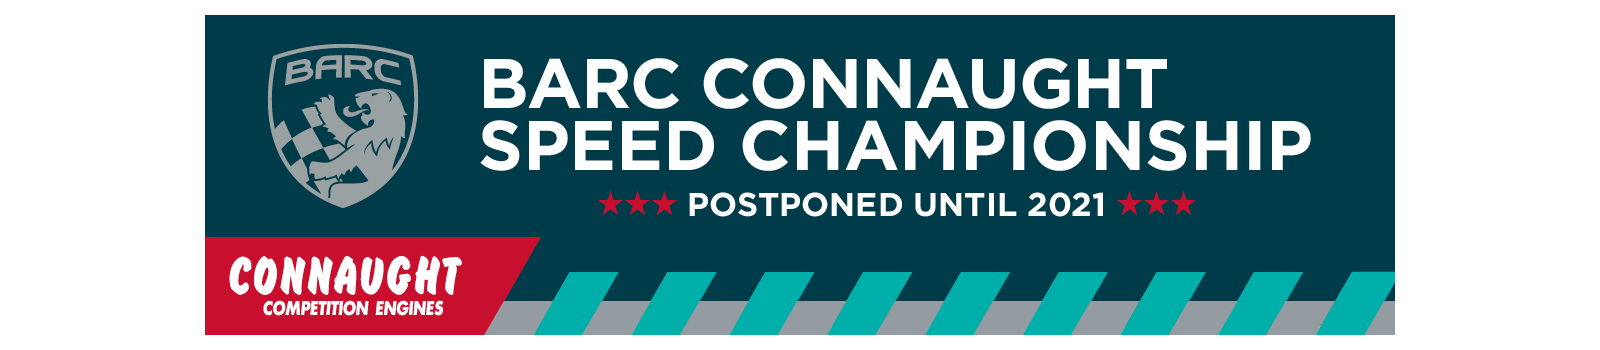 2020 Championship Postponement Header Banner